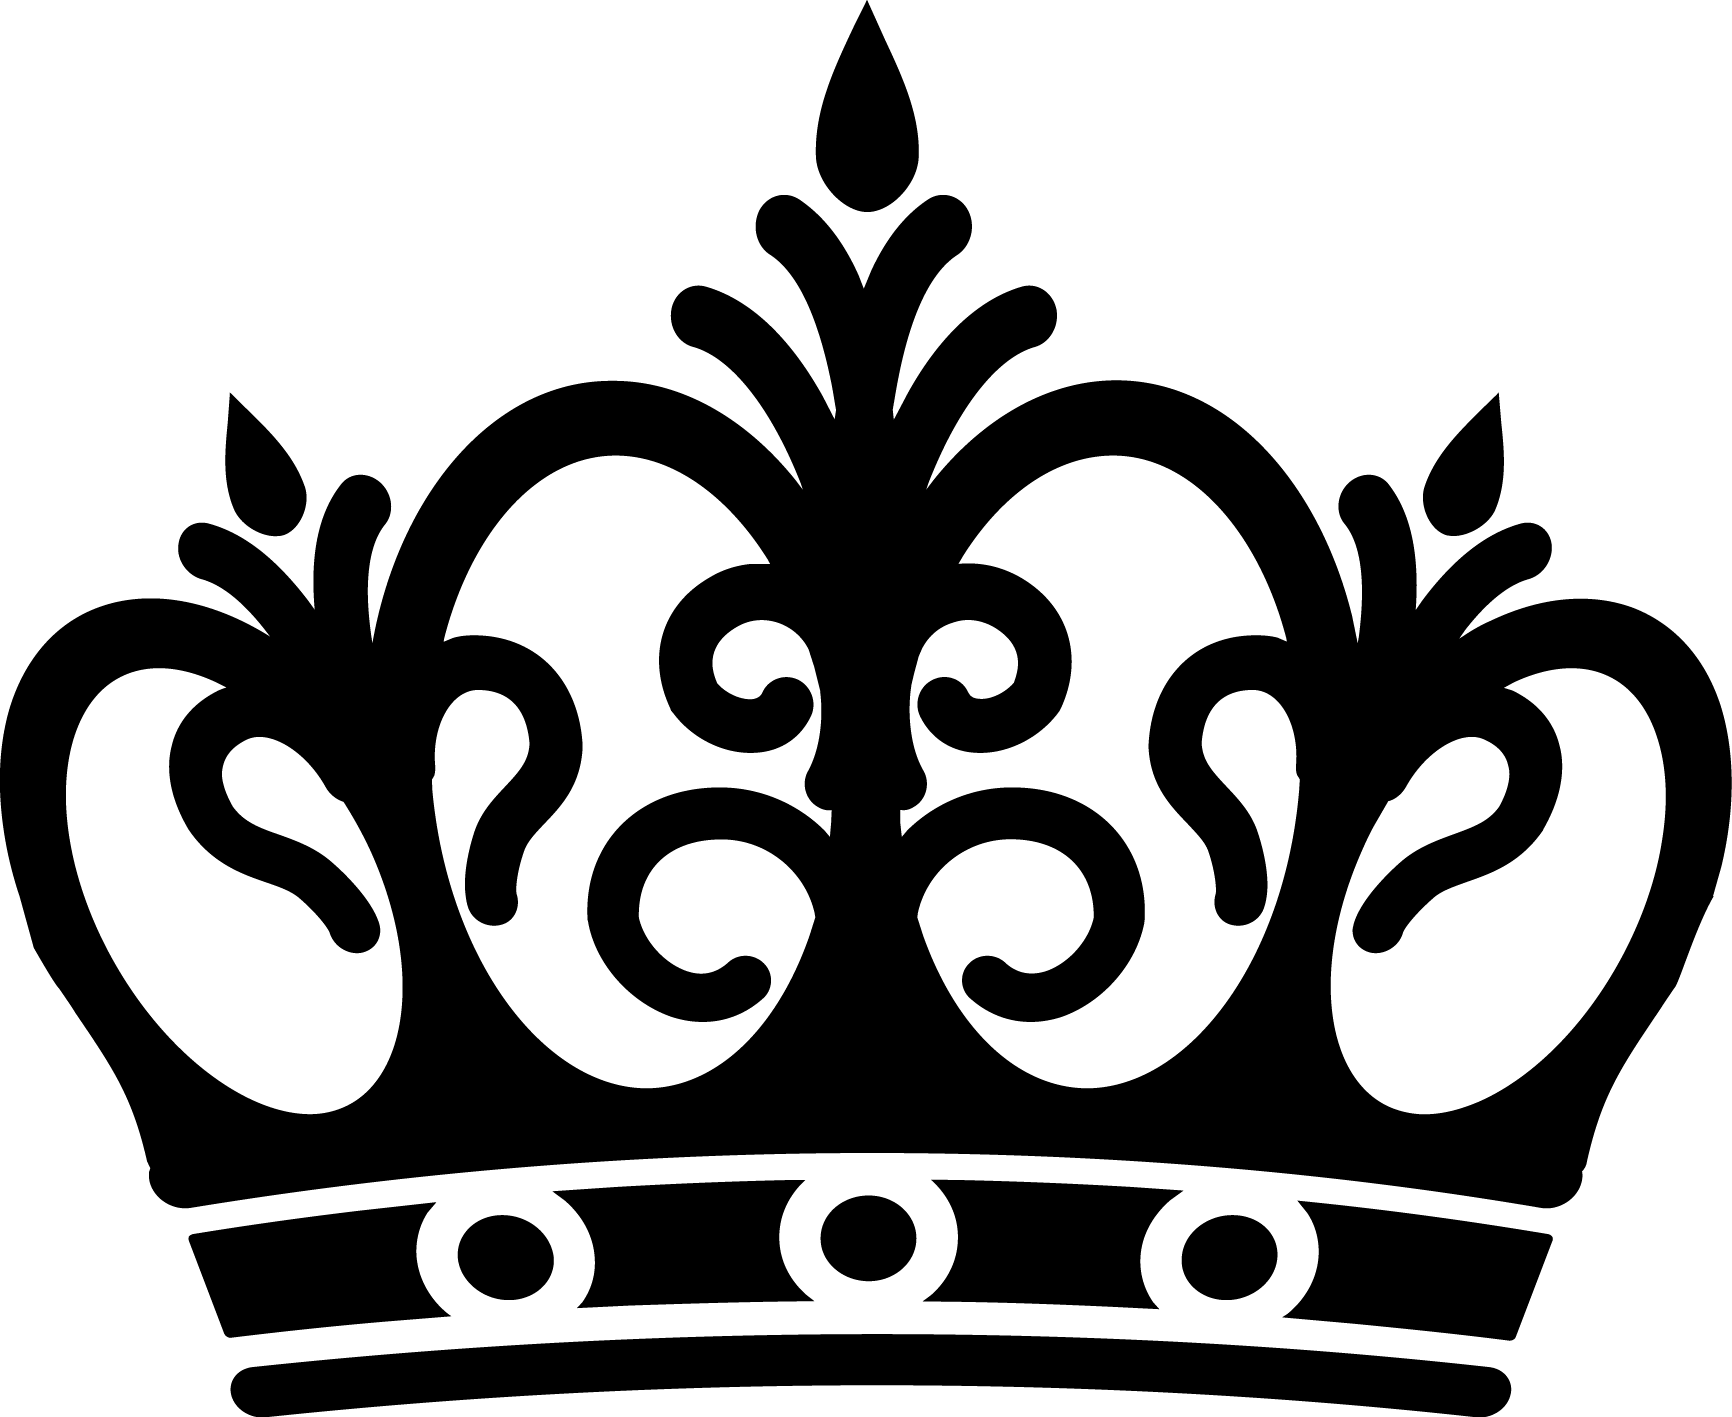 Hats drawing crown. Crowns clipart logo graphics